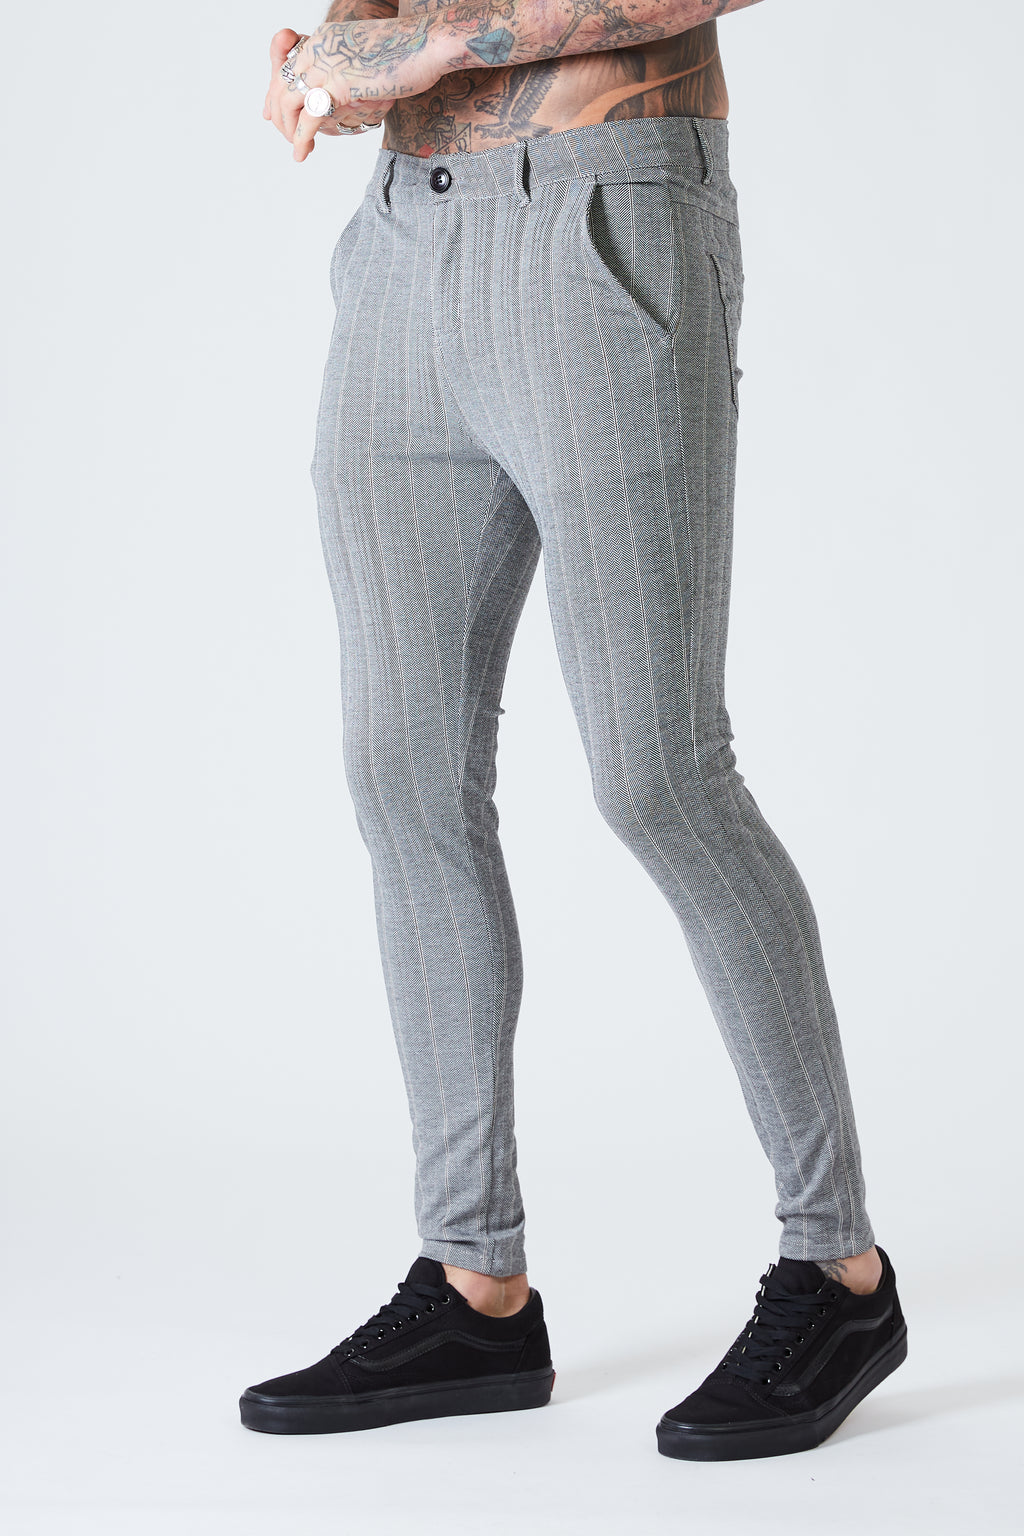 Luxe Skinny Pin Stripe Trousers - Grey - SVPPLY. STUDIOS